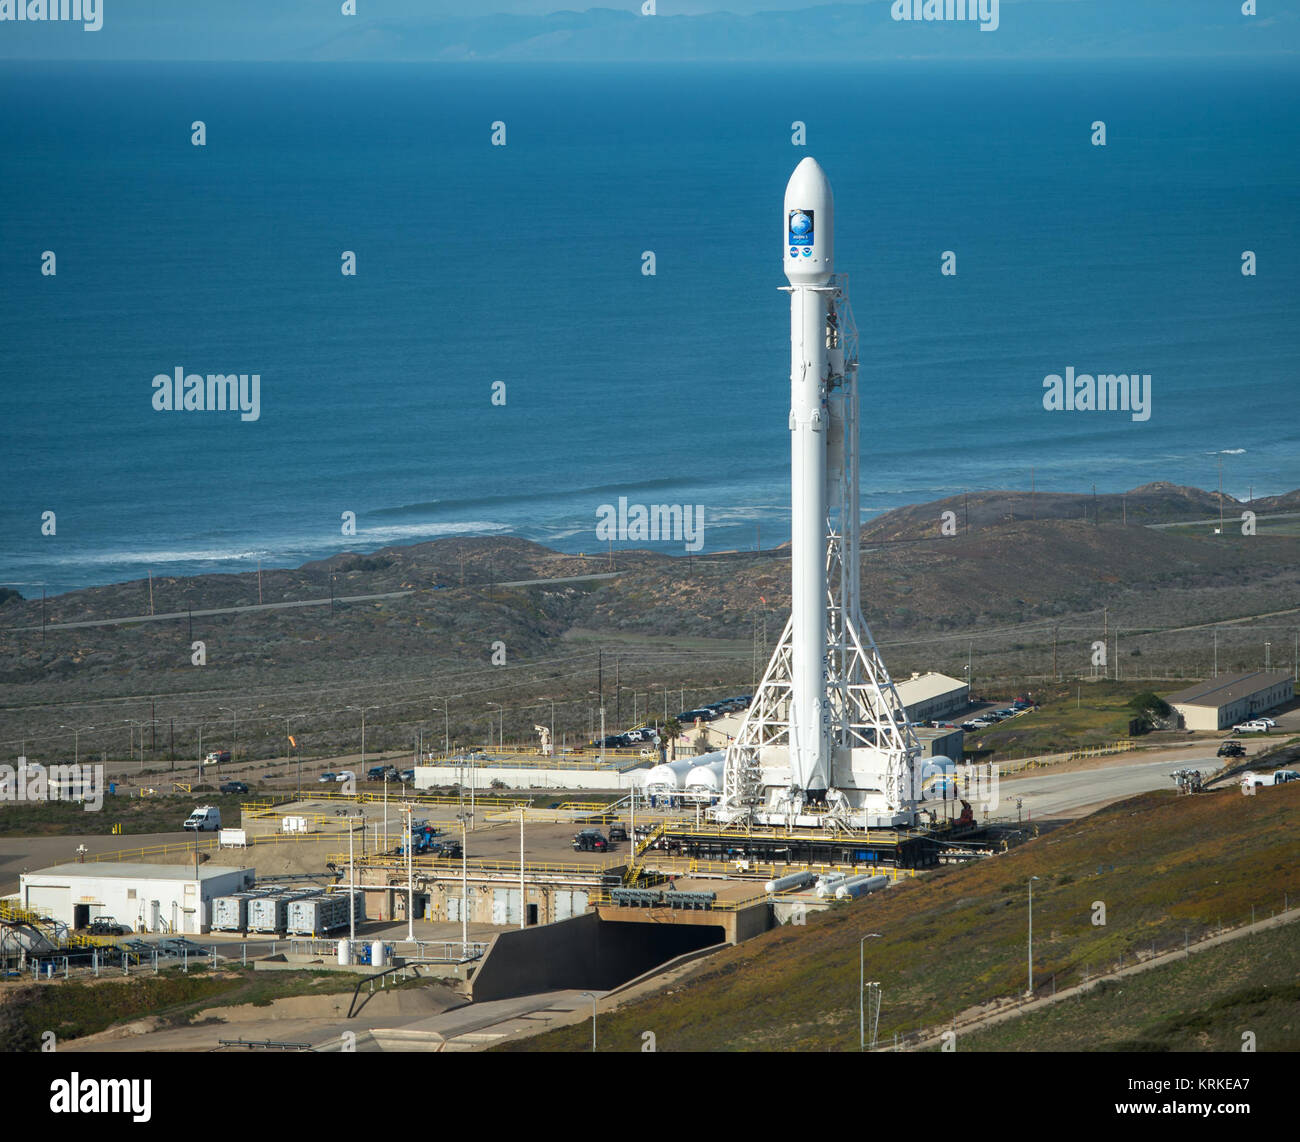 The SpaceX Falcon 9 rocket is seen at Vandenberg Air Force Base Space Launch Complex 4 East with the Jason-3 spacecraft - Stock Image